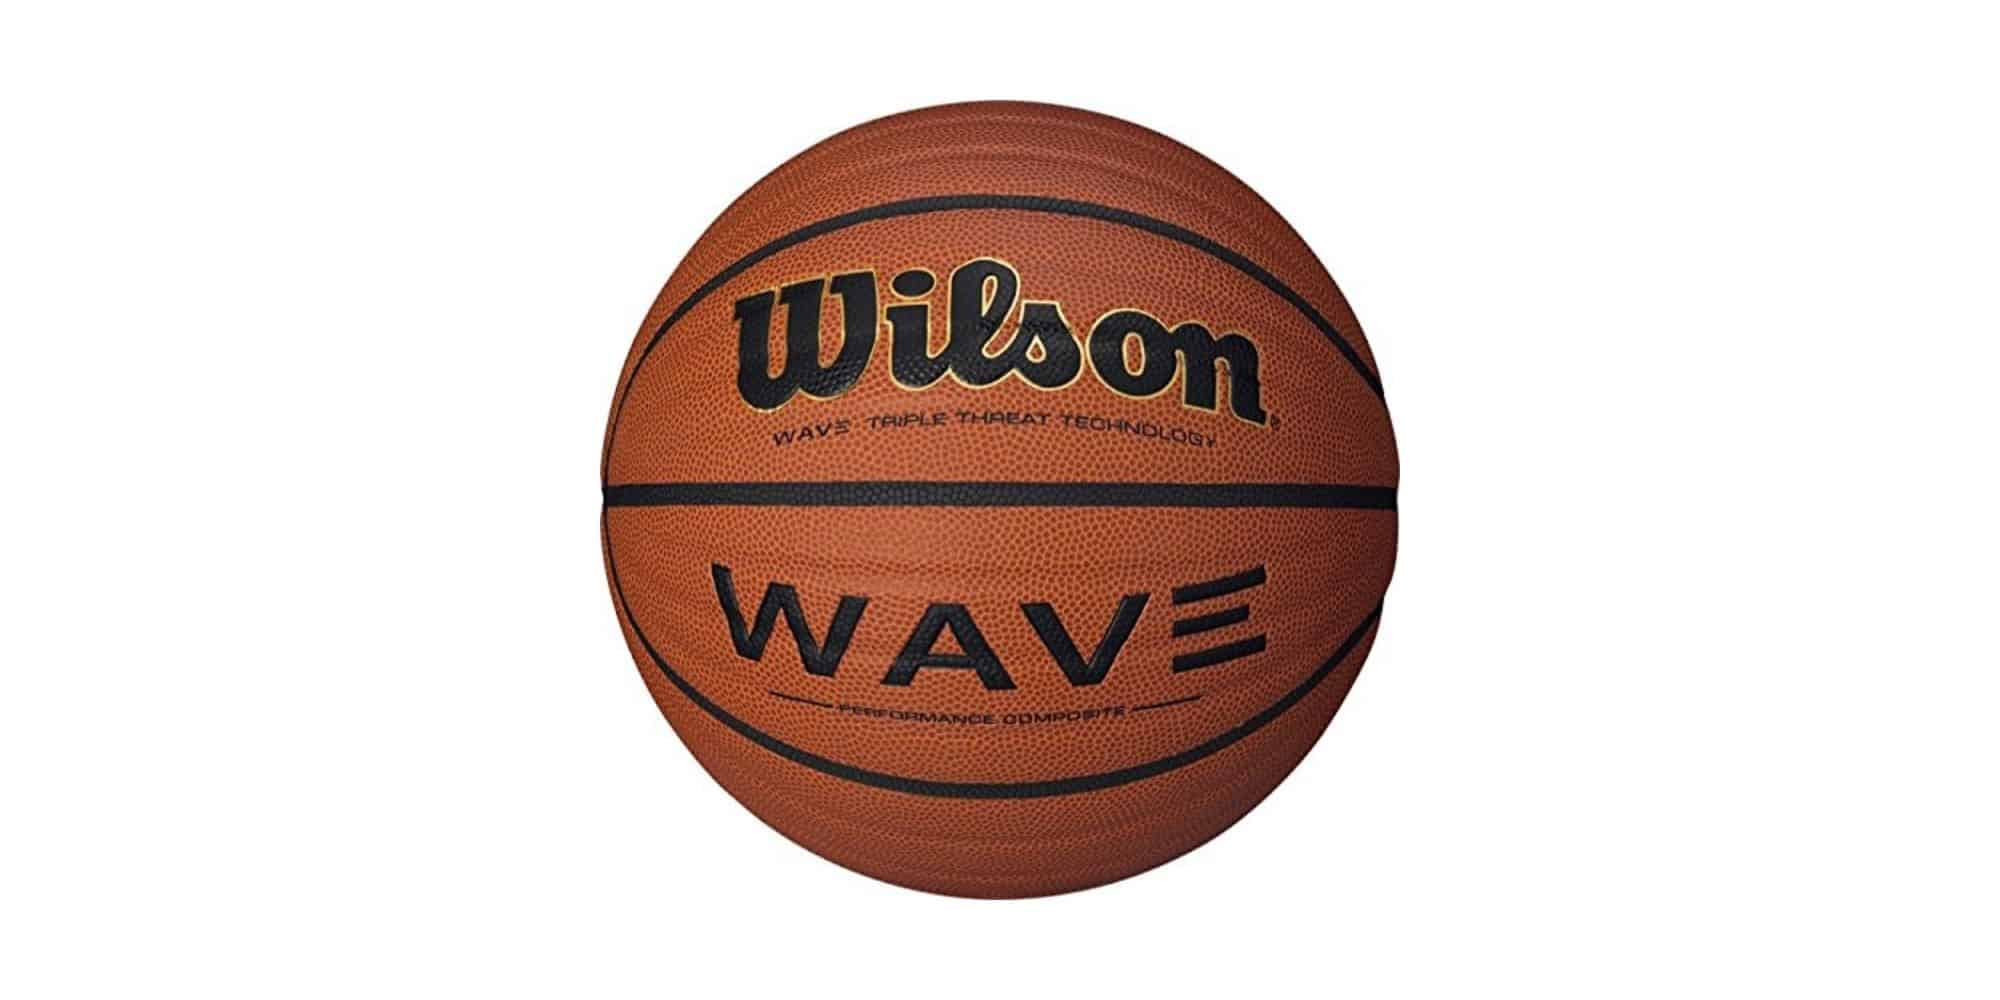 featured image for wilson ncaa wave basketball review